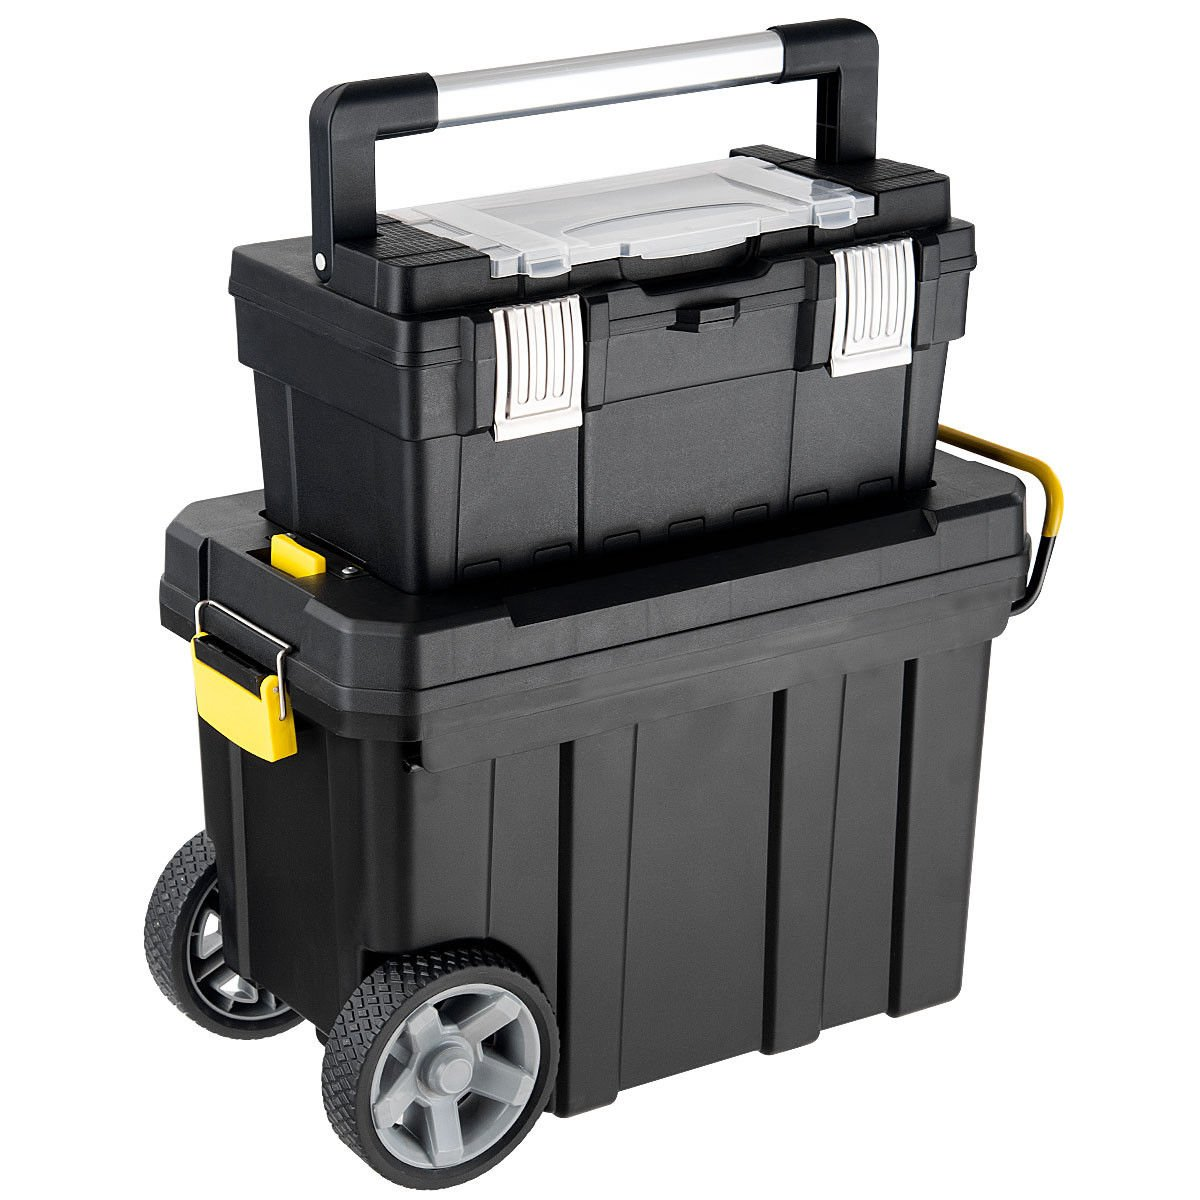 Goplus 2-in-1 Tool Box Portable Rolling Toolbox Storage Solution Multi-Purpose Plastic Organizer Set Mobile Workshop with Wheels